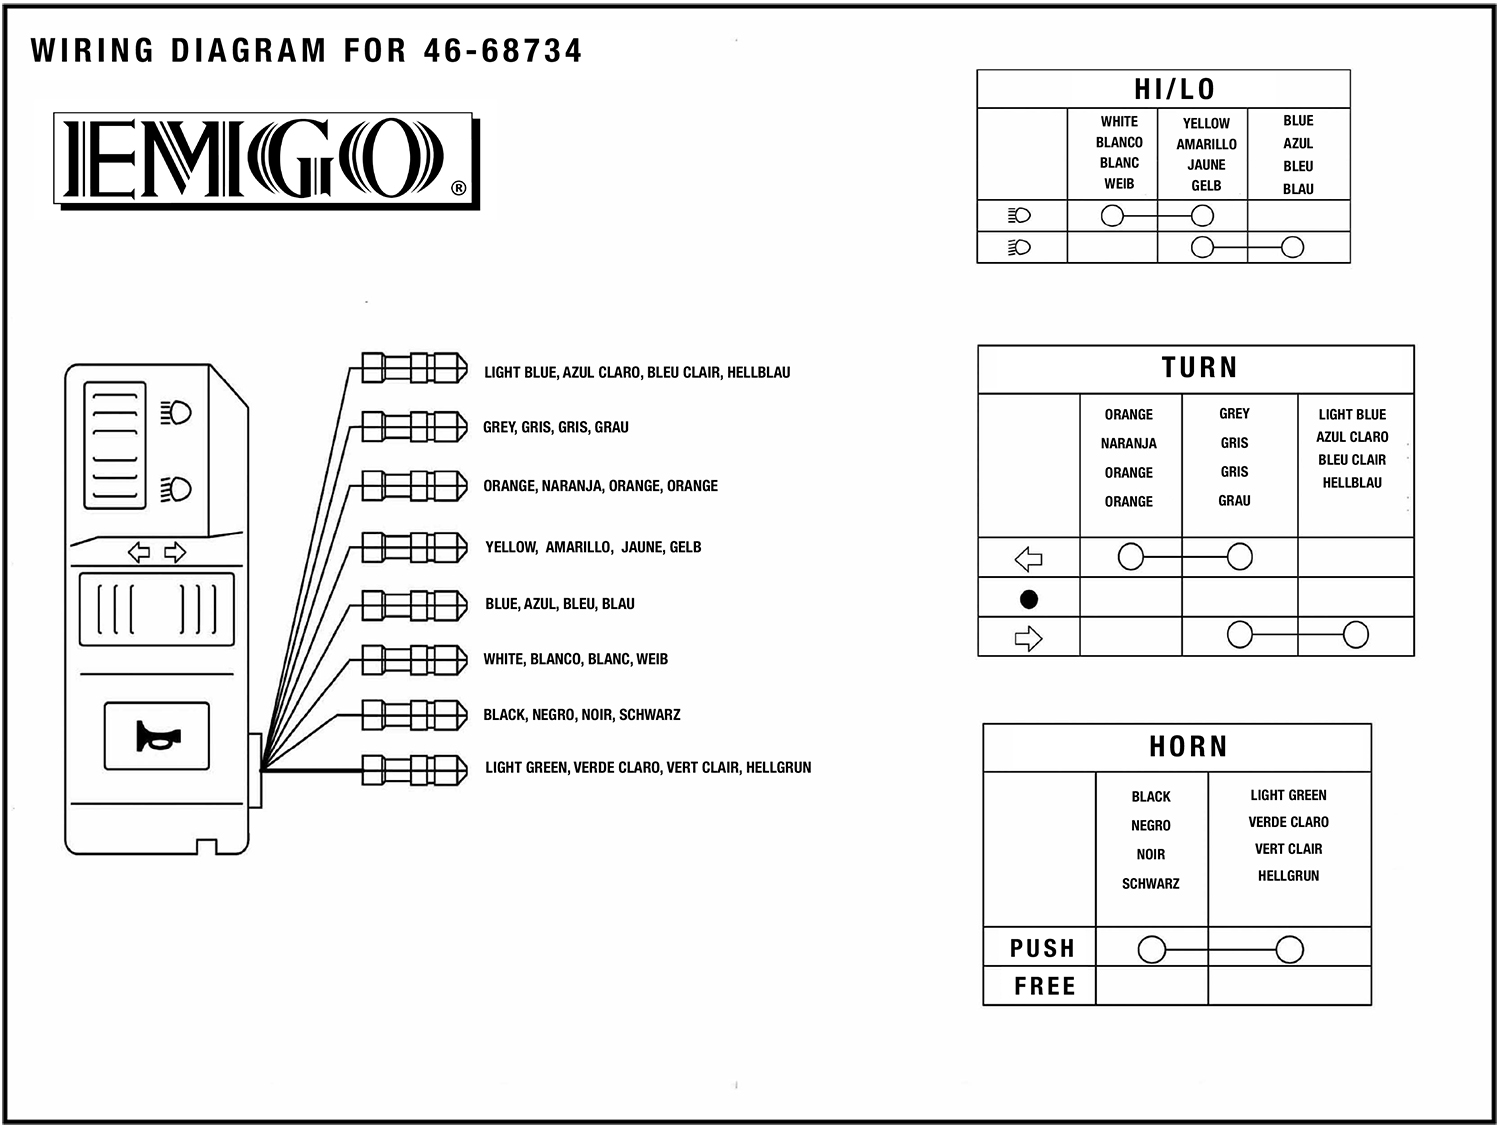 46 68734 wiring diagram left emgo schematic pin out handlebar multi switch motorcycle?t=1490389479 emgo universal handlebar multi switch left 46 68734 wiring cb450sc wiring diagram at gsmx.co